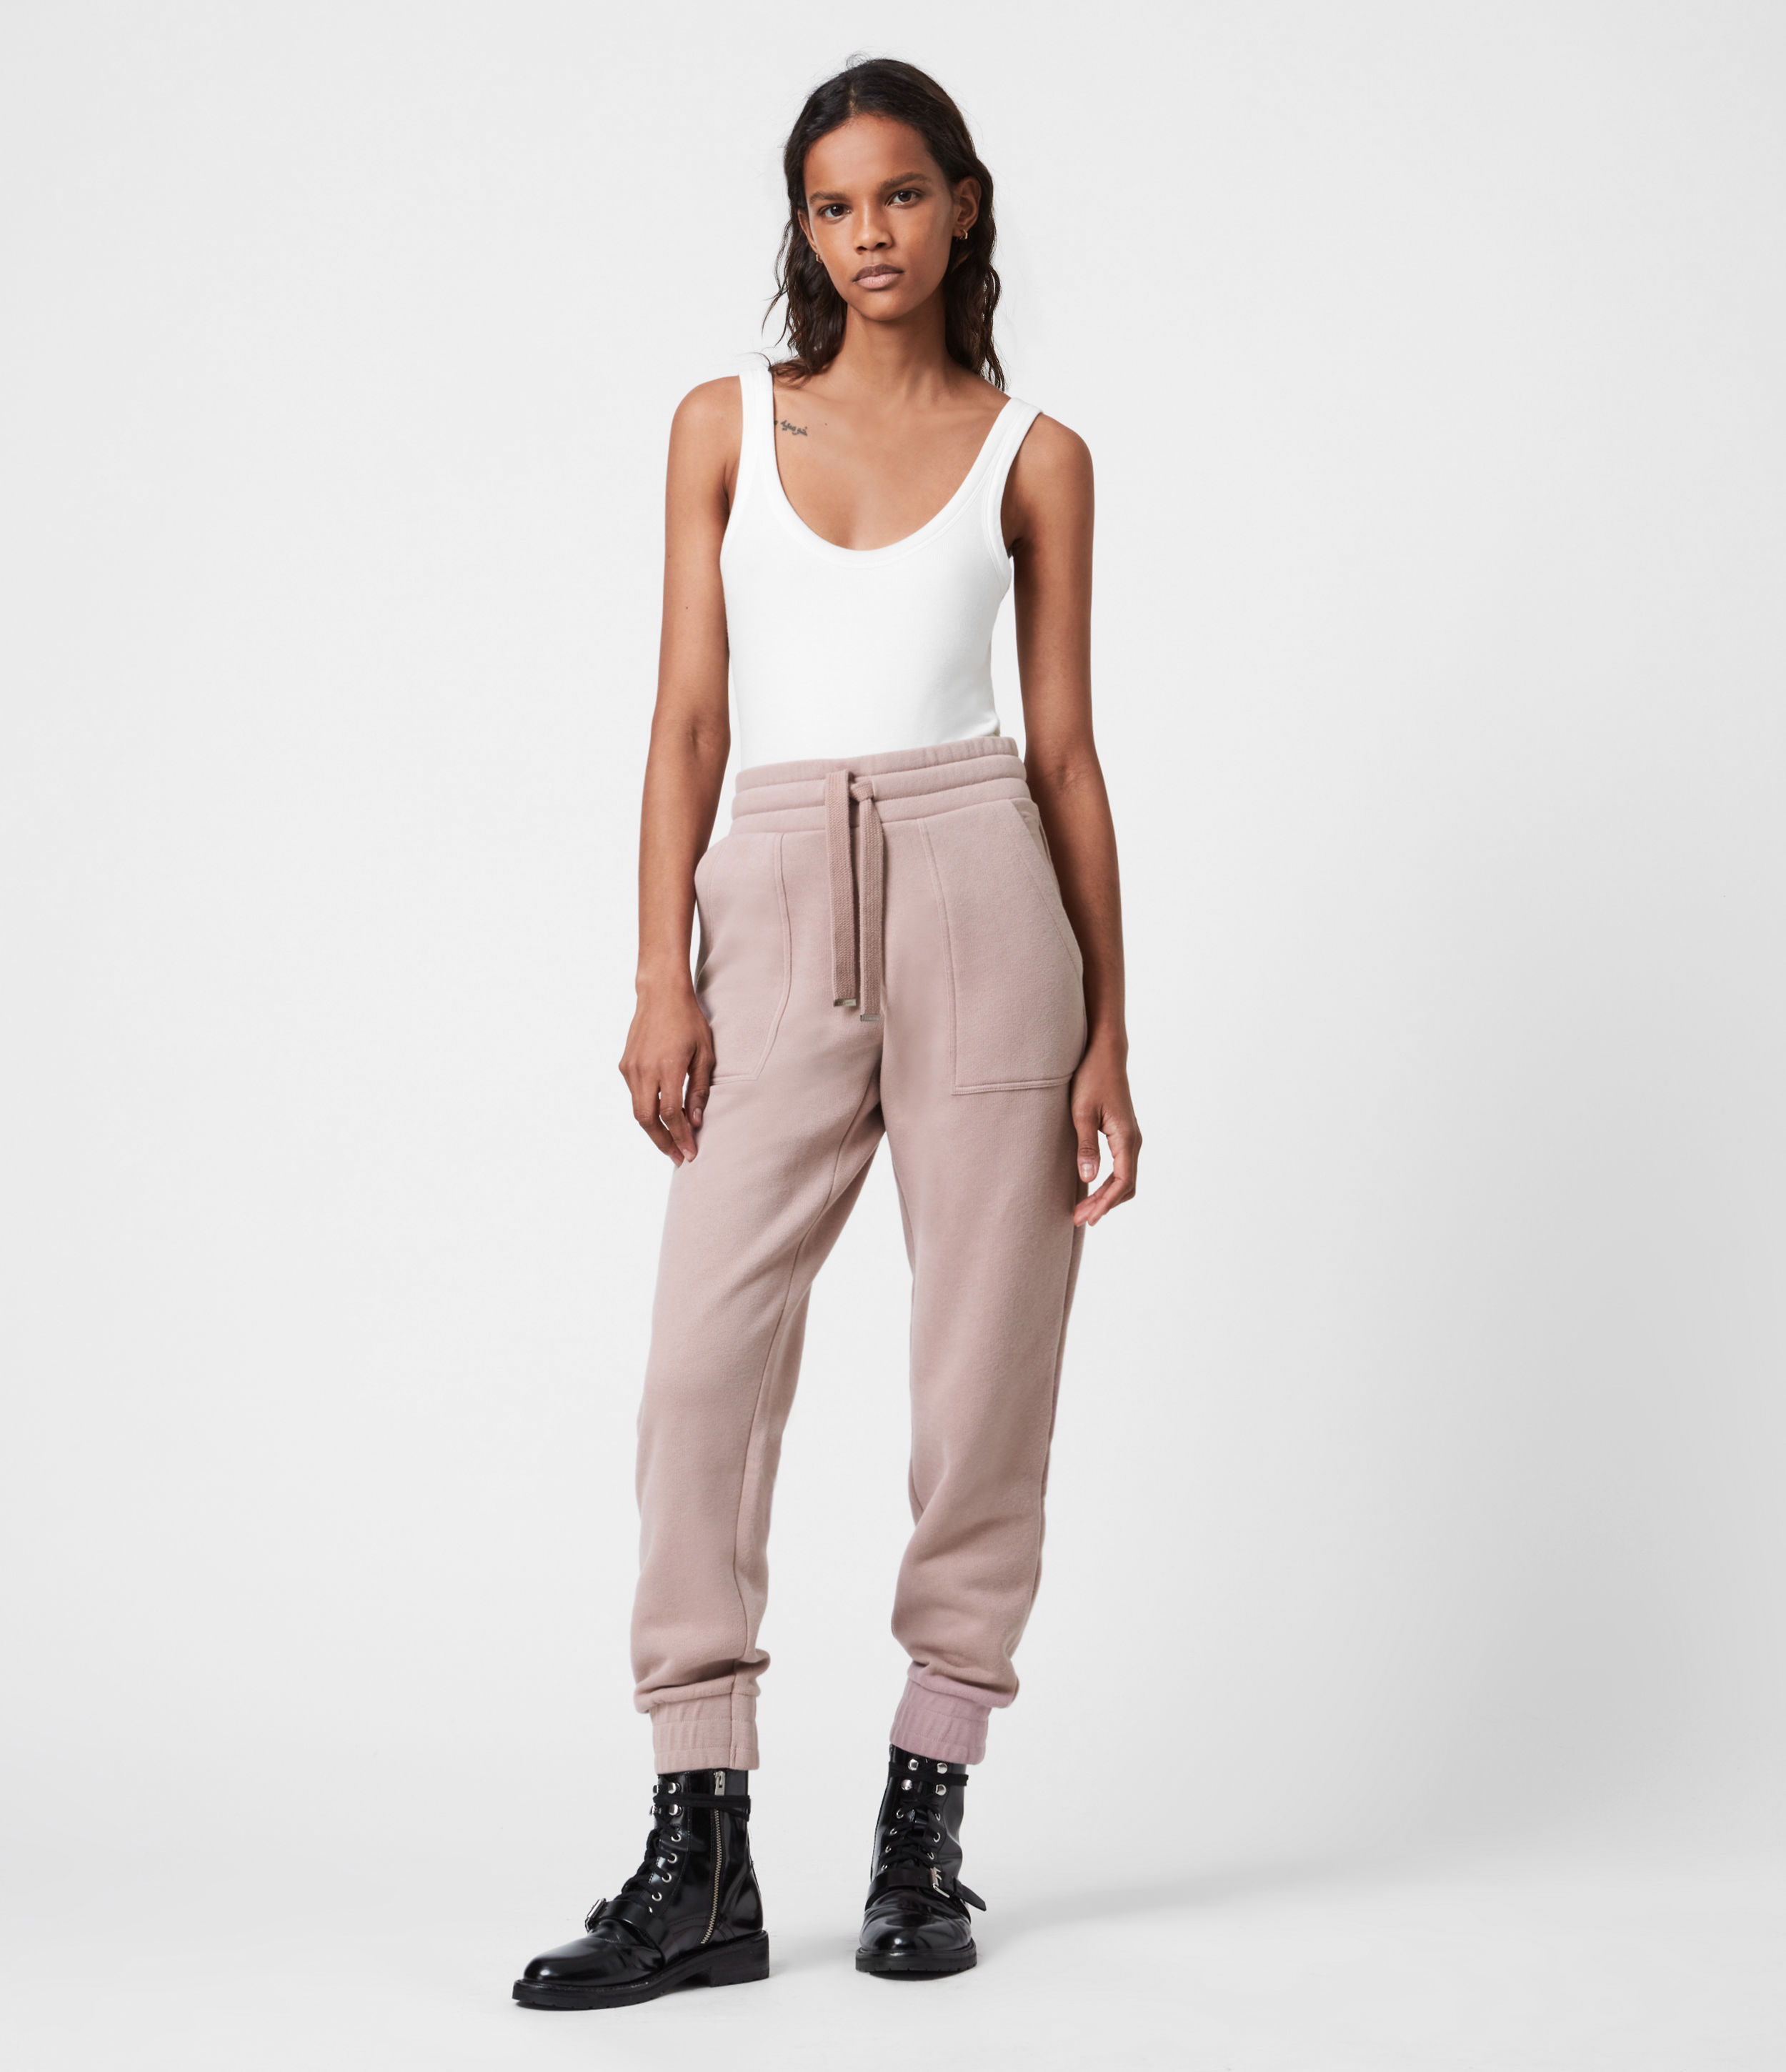 AllSaints Women's Lucia Cuffed Relaxed Sweatpants, Morning Mauve, Size: 8